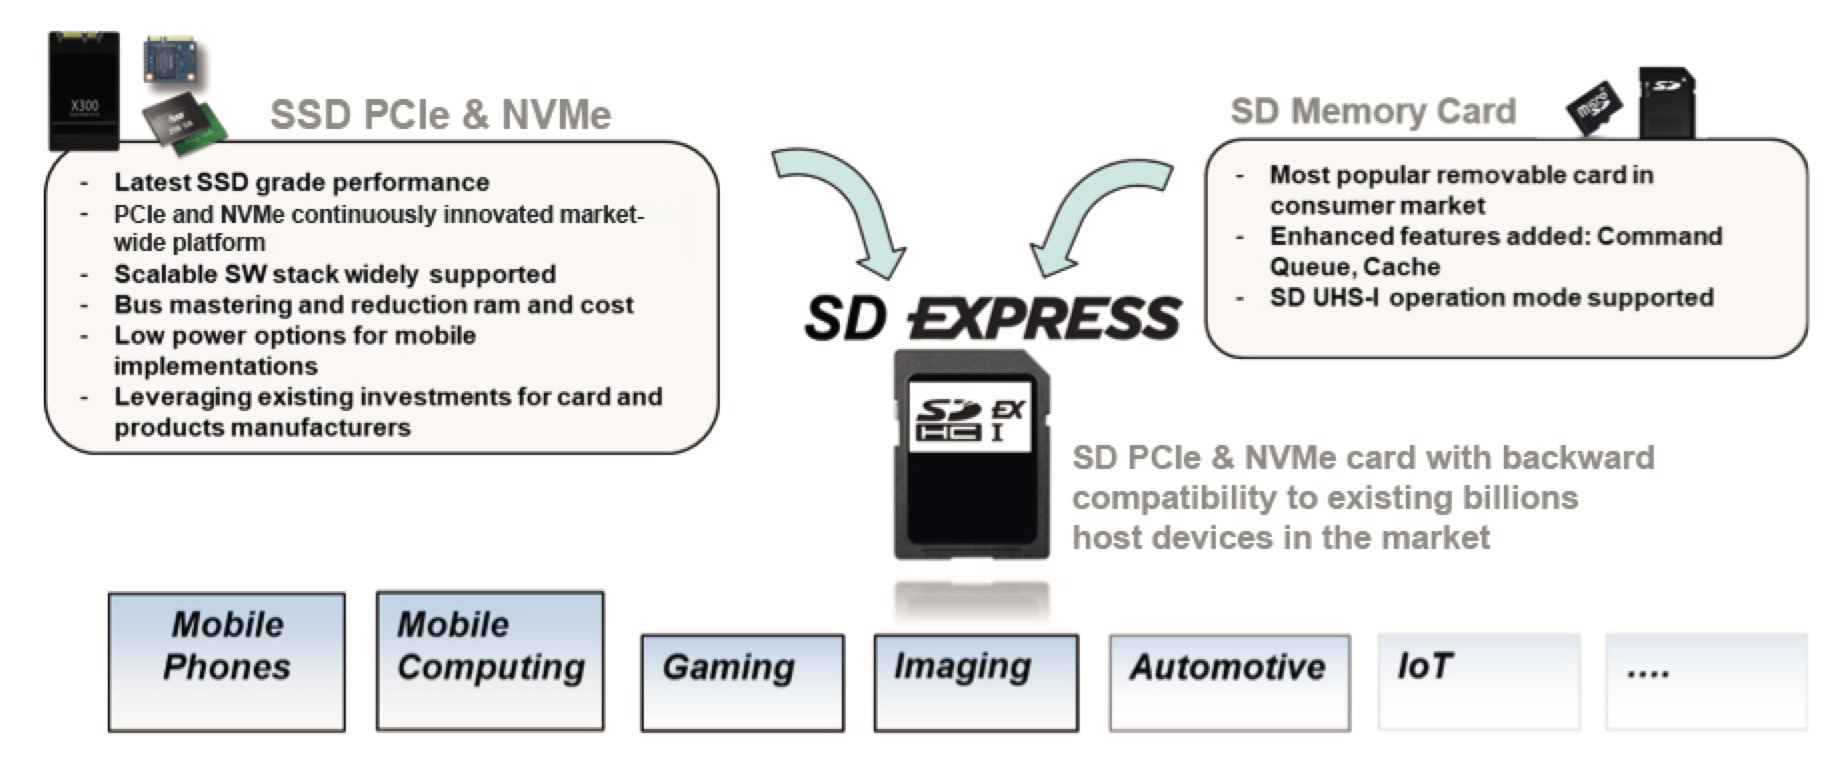 The New Sd Express Specification Introduces Pcie 3 0 And Nvme 1 Interface Support